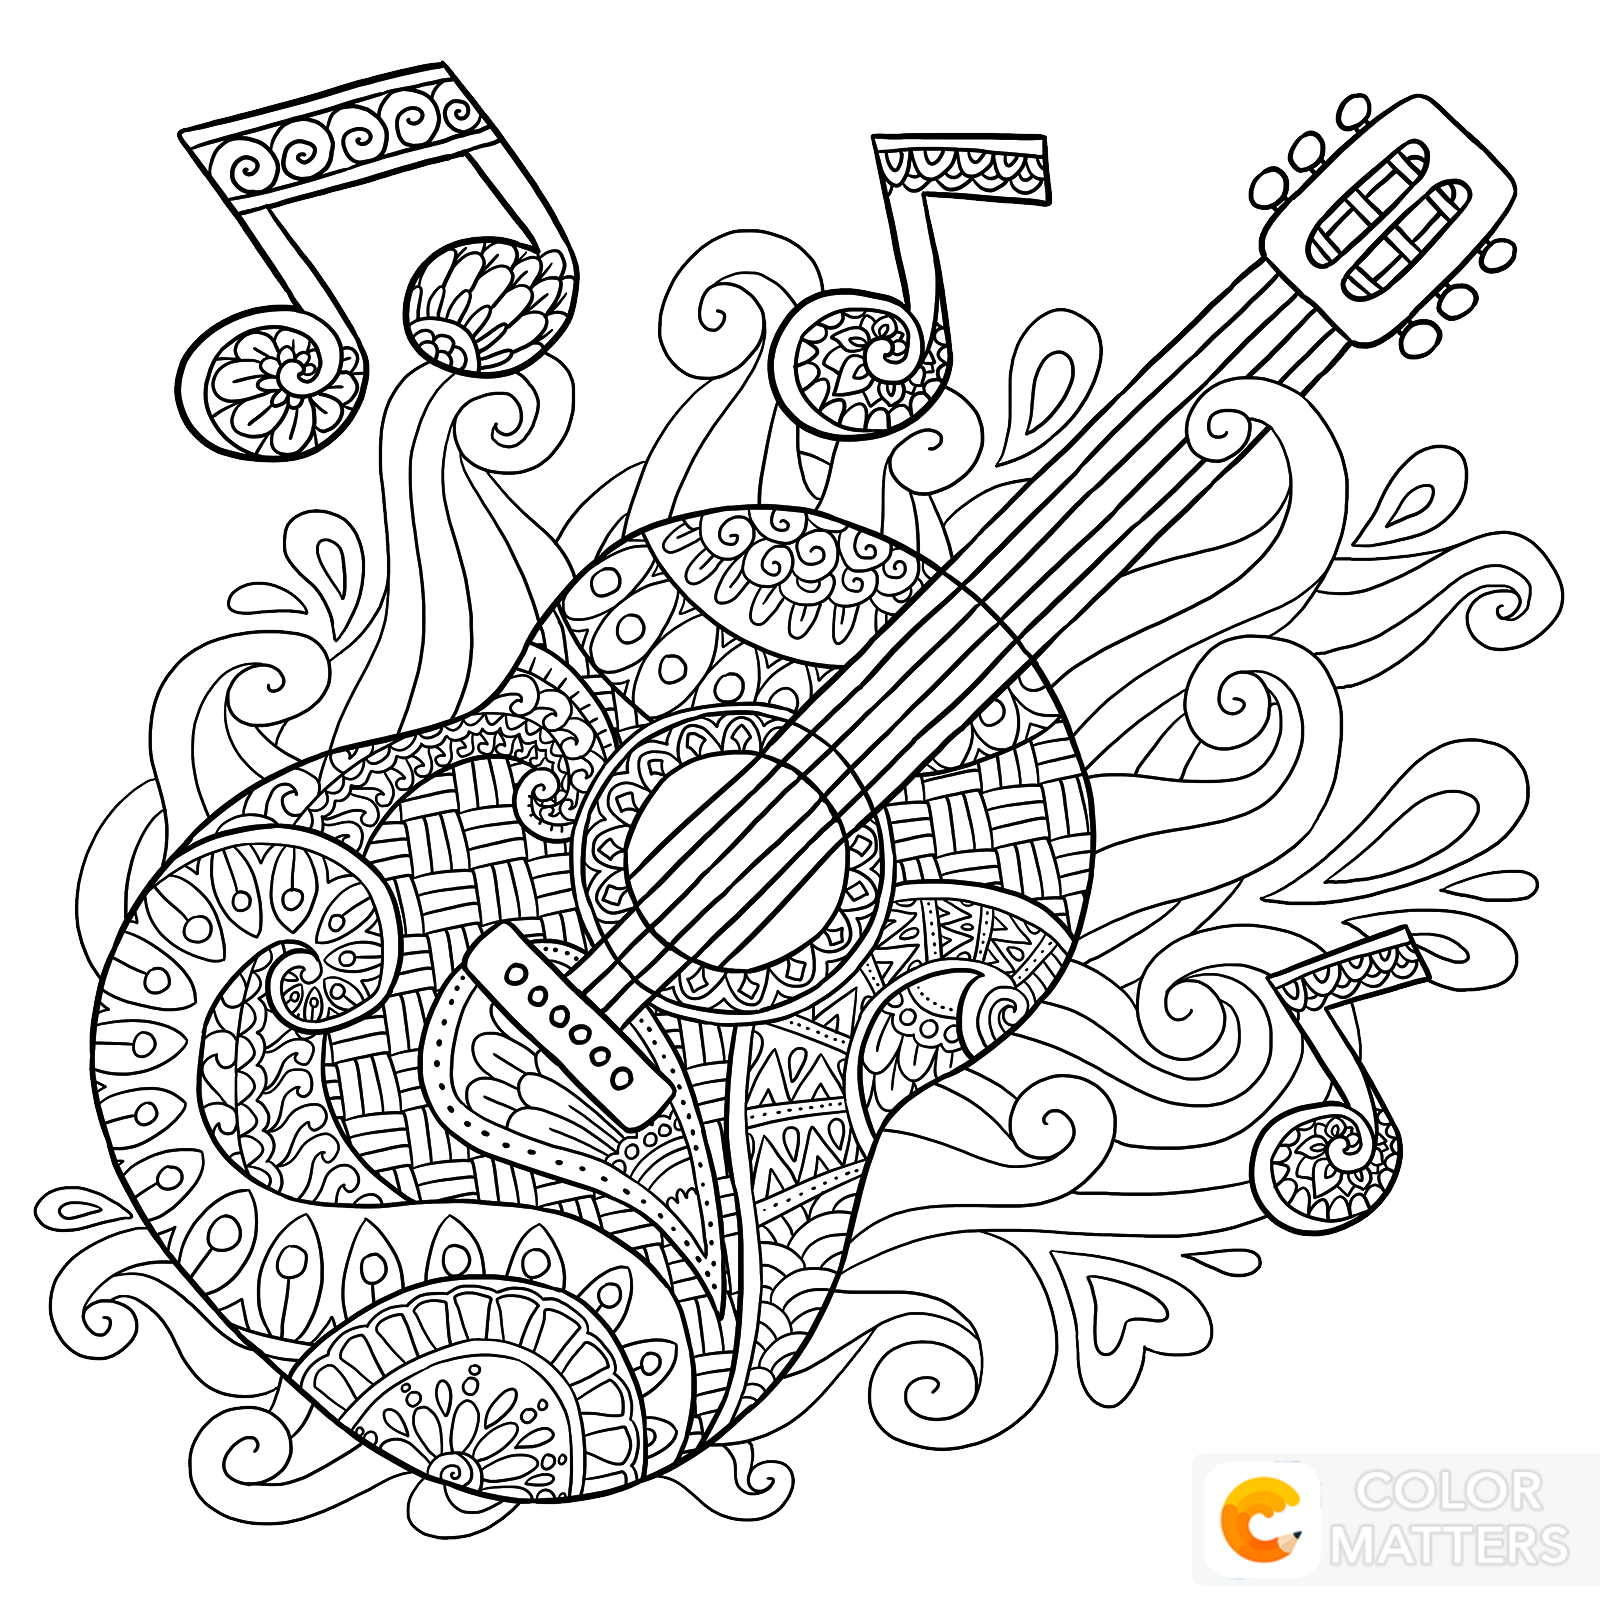 Guitar Coloring Page Music Coloring Sheets Music Coloring Colouring Pages